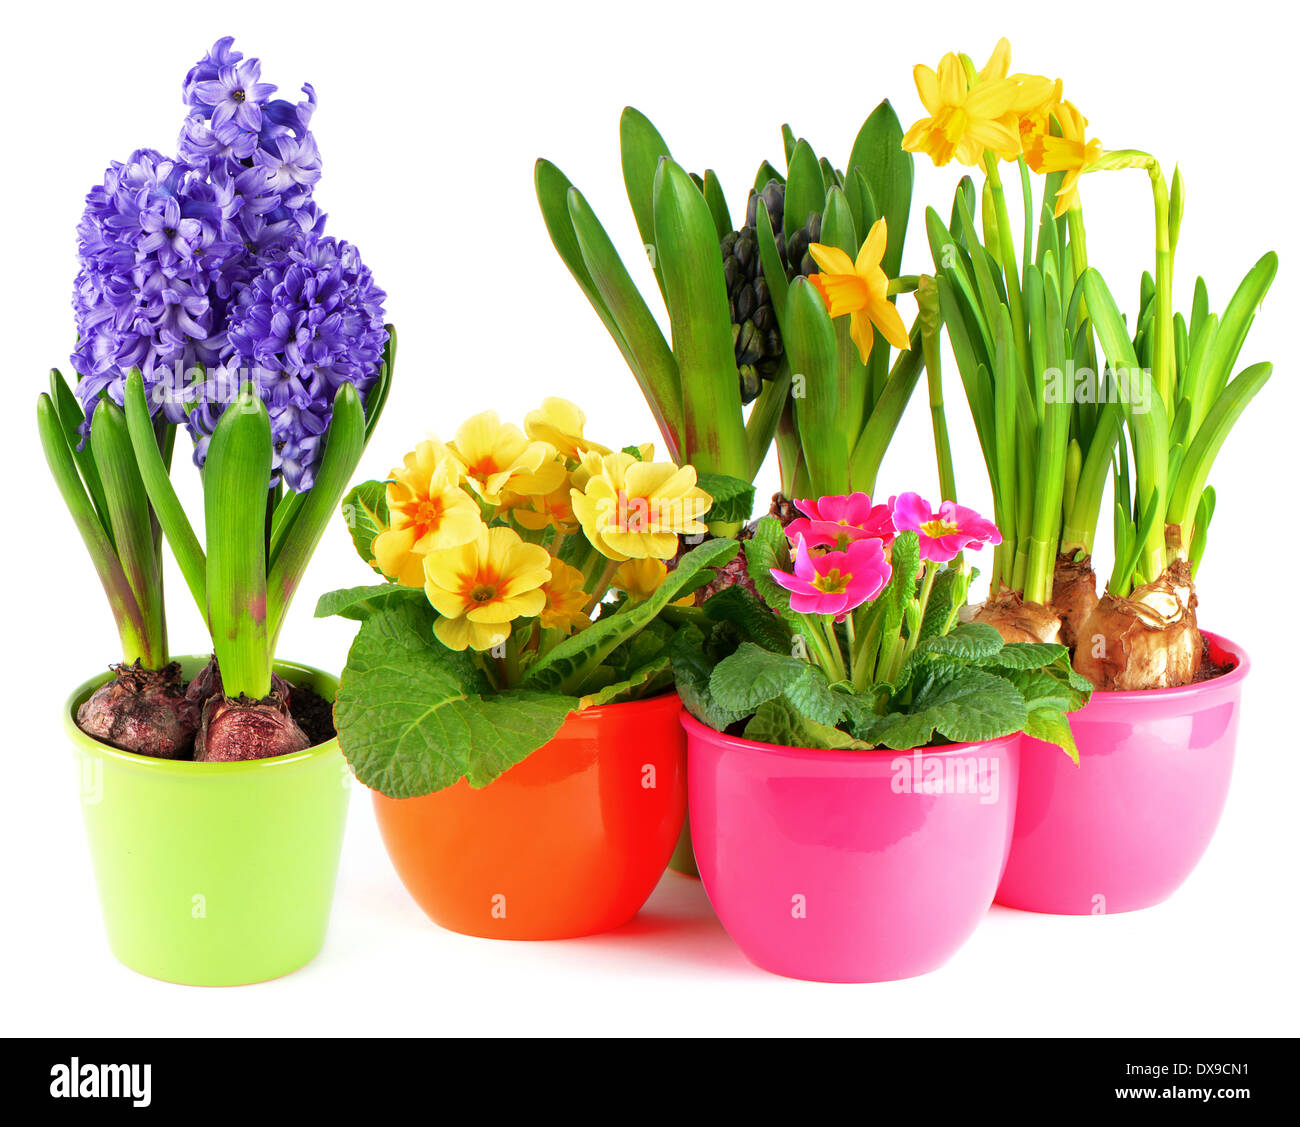 Colorful Spring Flowers In Pots On White Background Blue Hyacinth